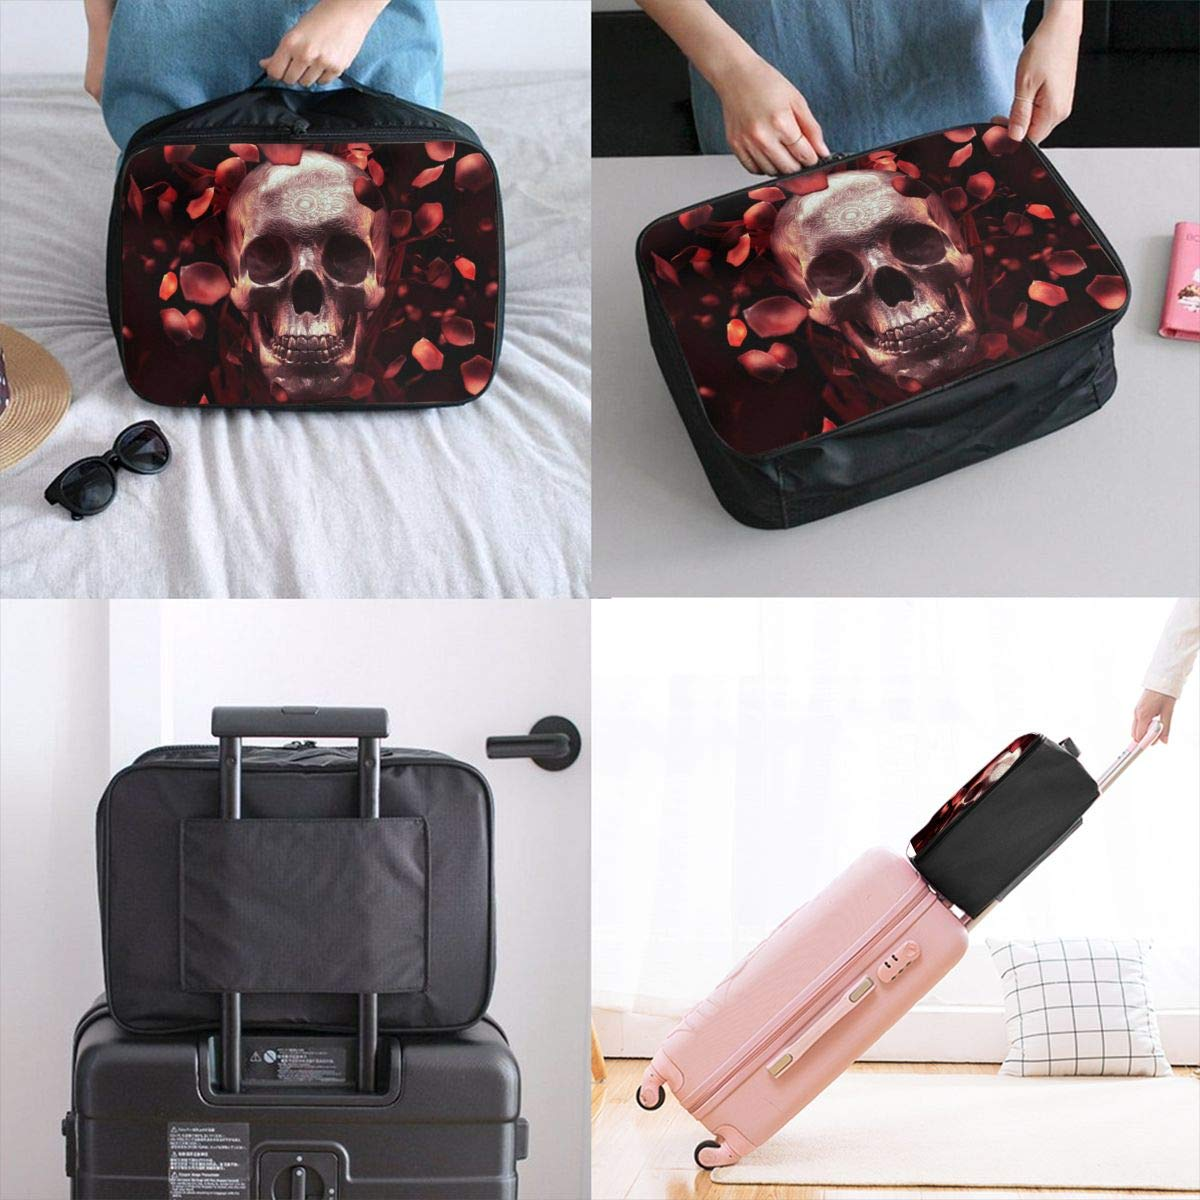 Skull With Rose Petals In Dark Travel Lightweight Waterproof Foldable Storage Portable Luggage Duffle Tote Bag Large Capacity In Trolley Handle Bags 6x11x15 Inch